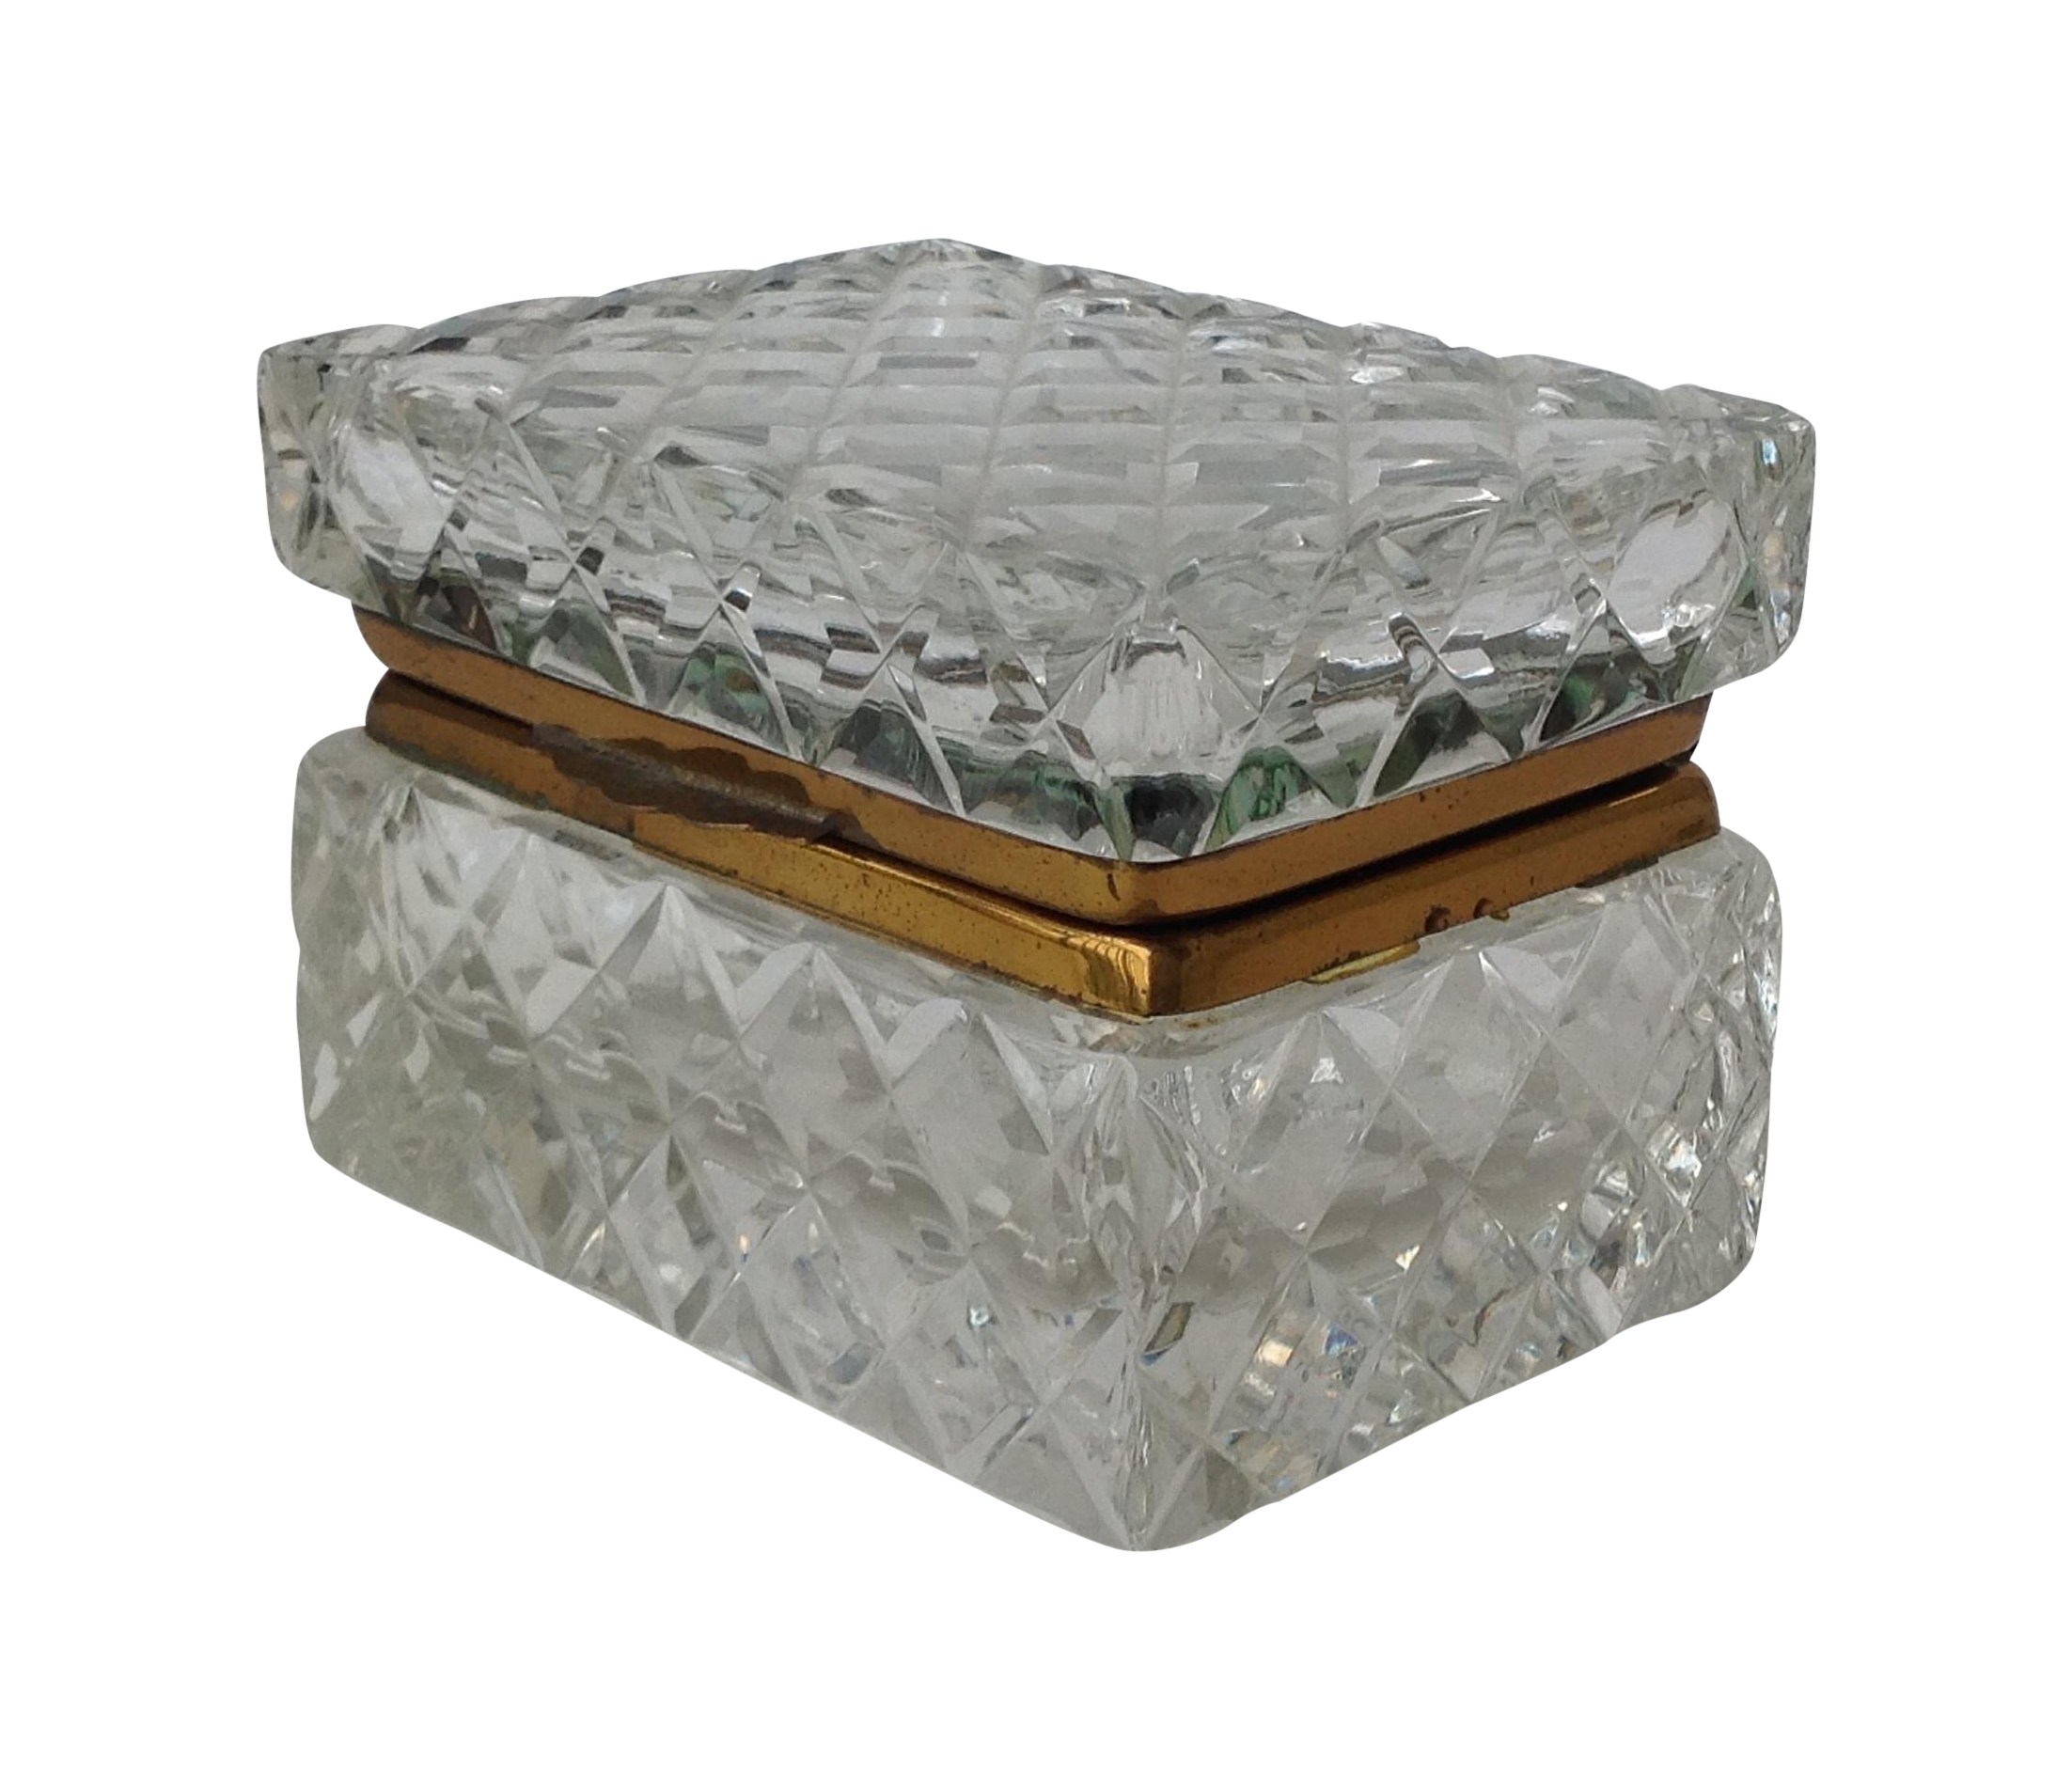 Antique Cut Glass Jewelry Box Chairish